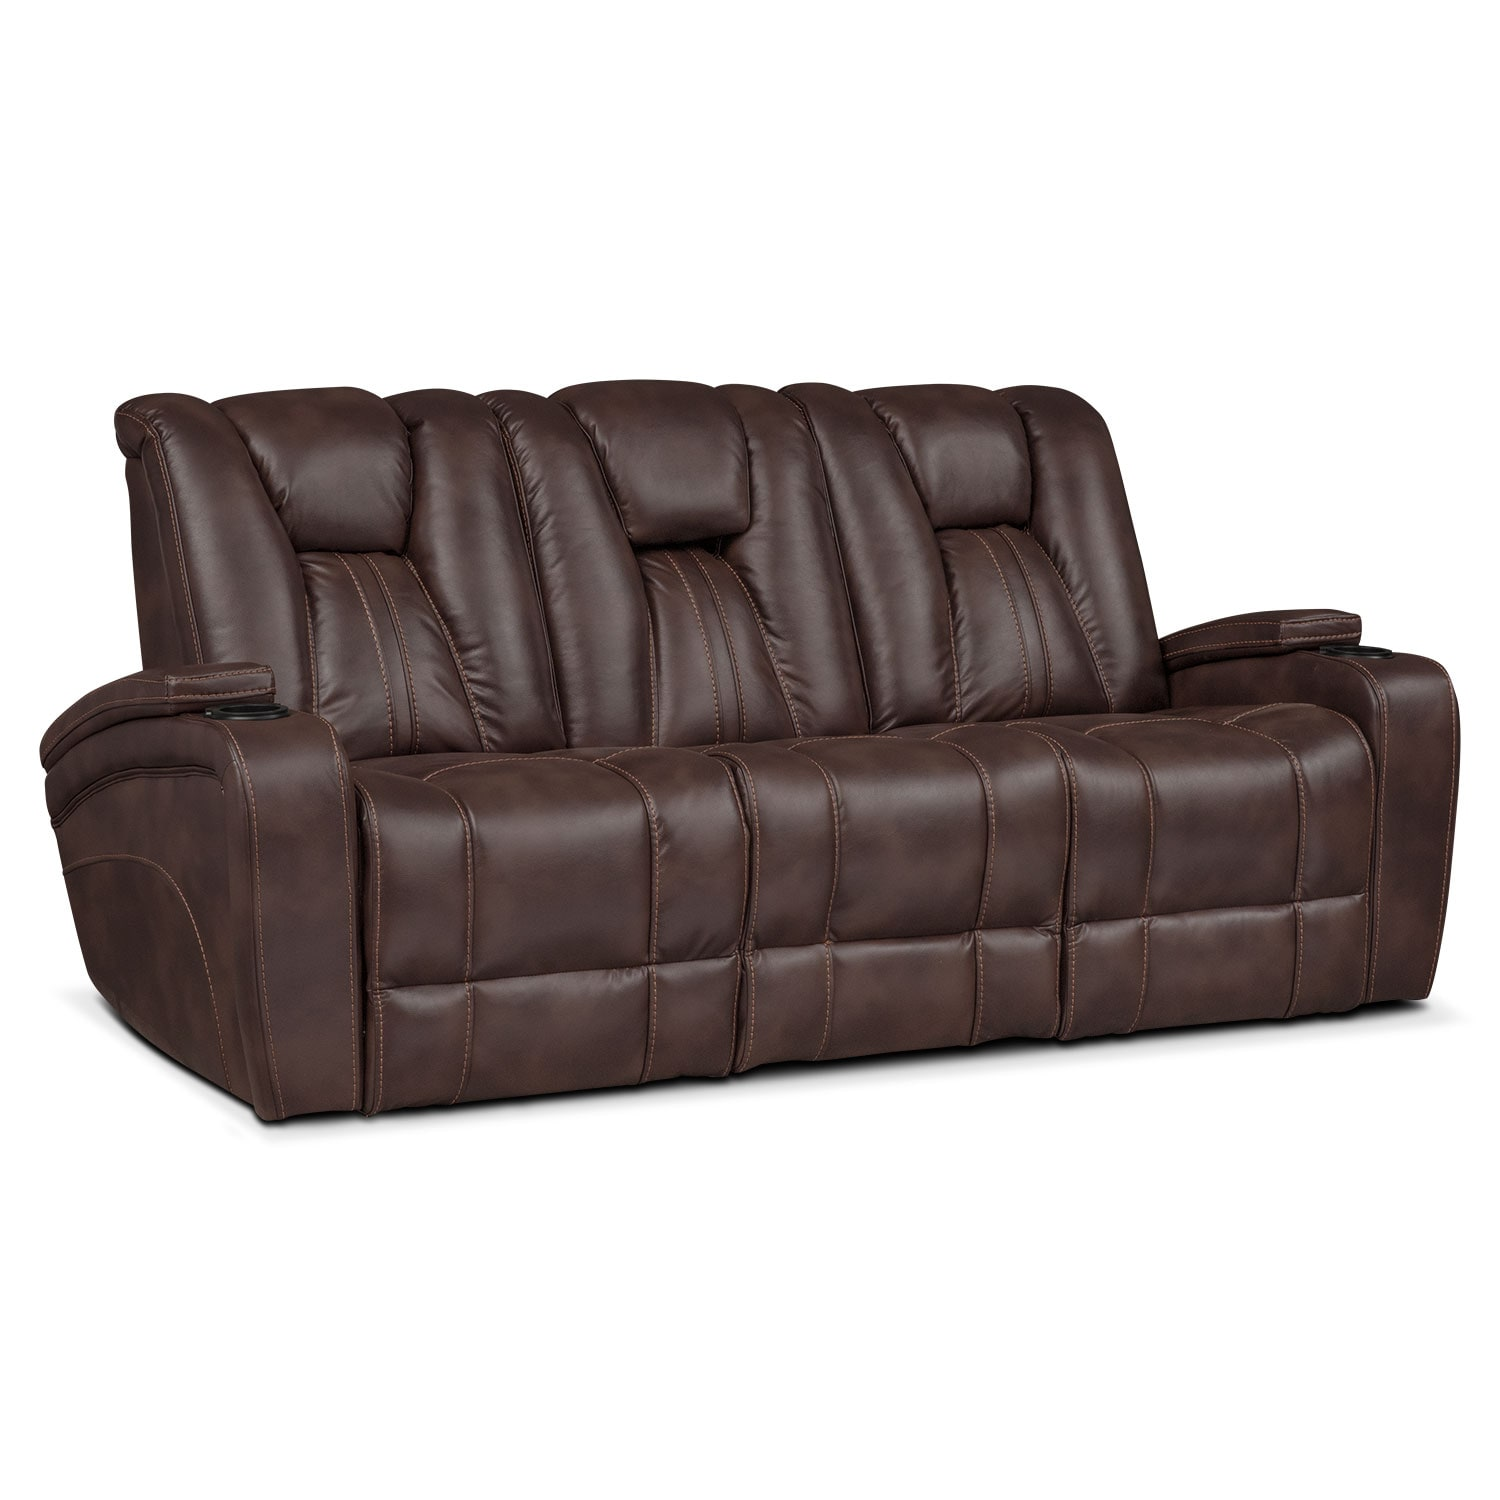 Pulsar Dual Reclining Sofa Brown Living Room Furniture